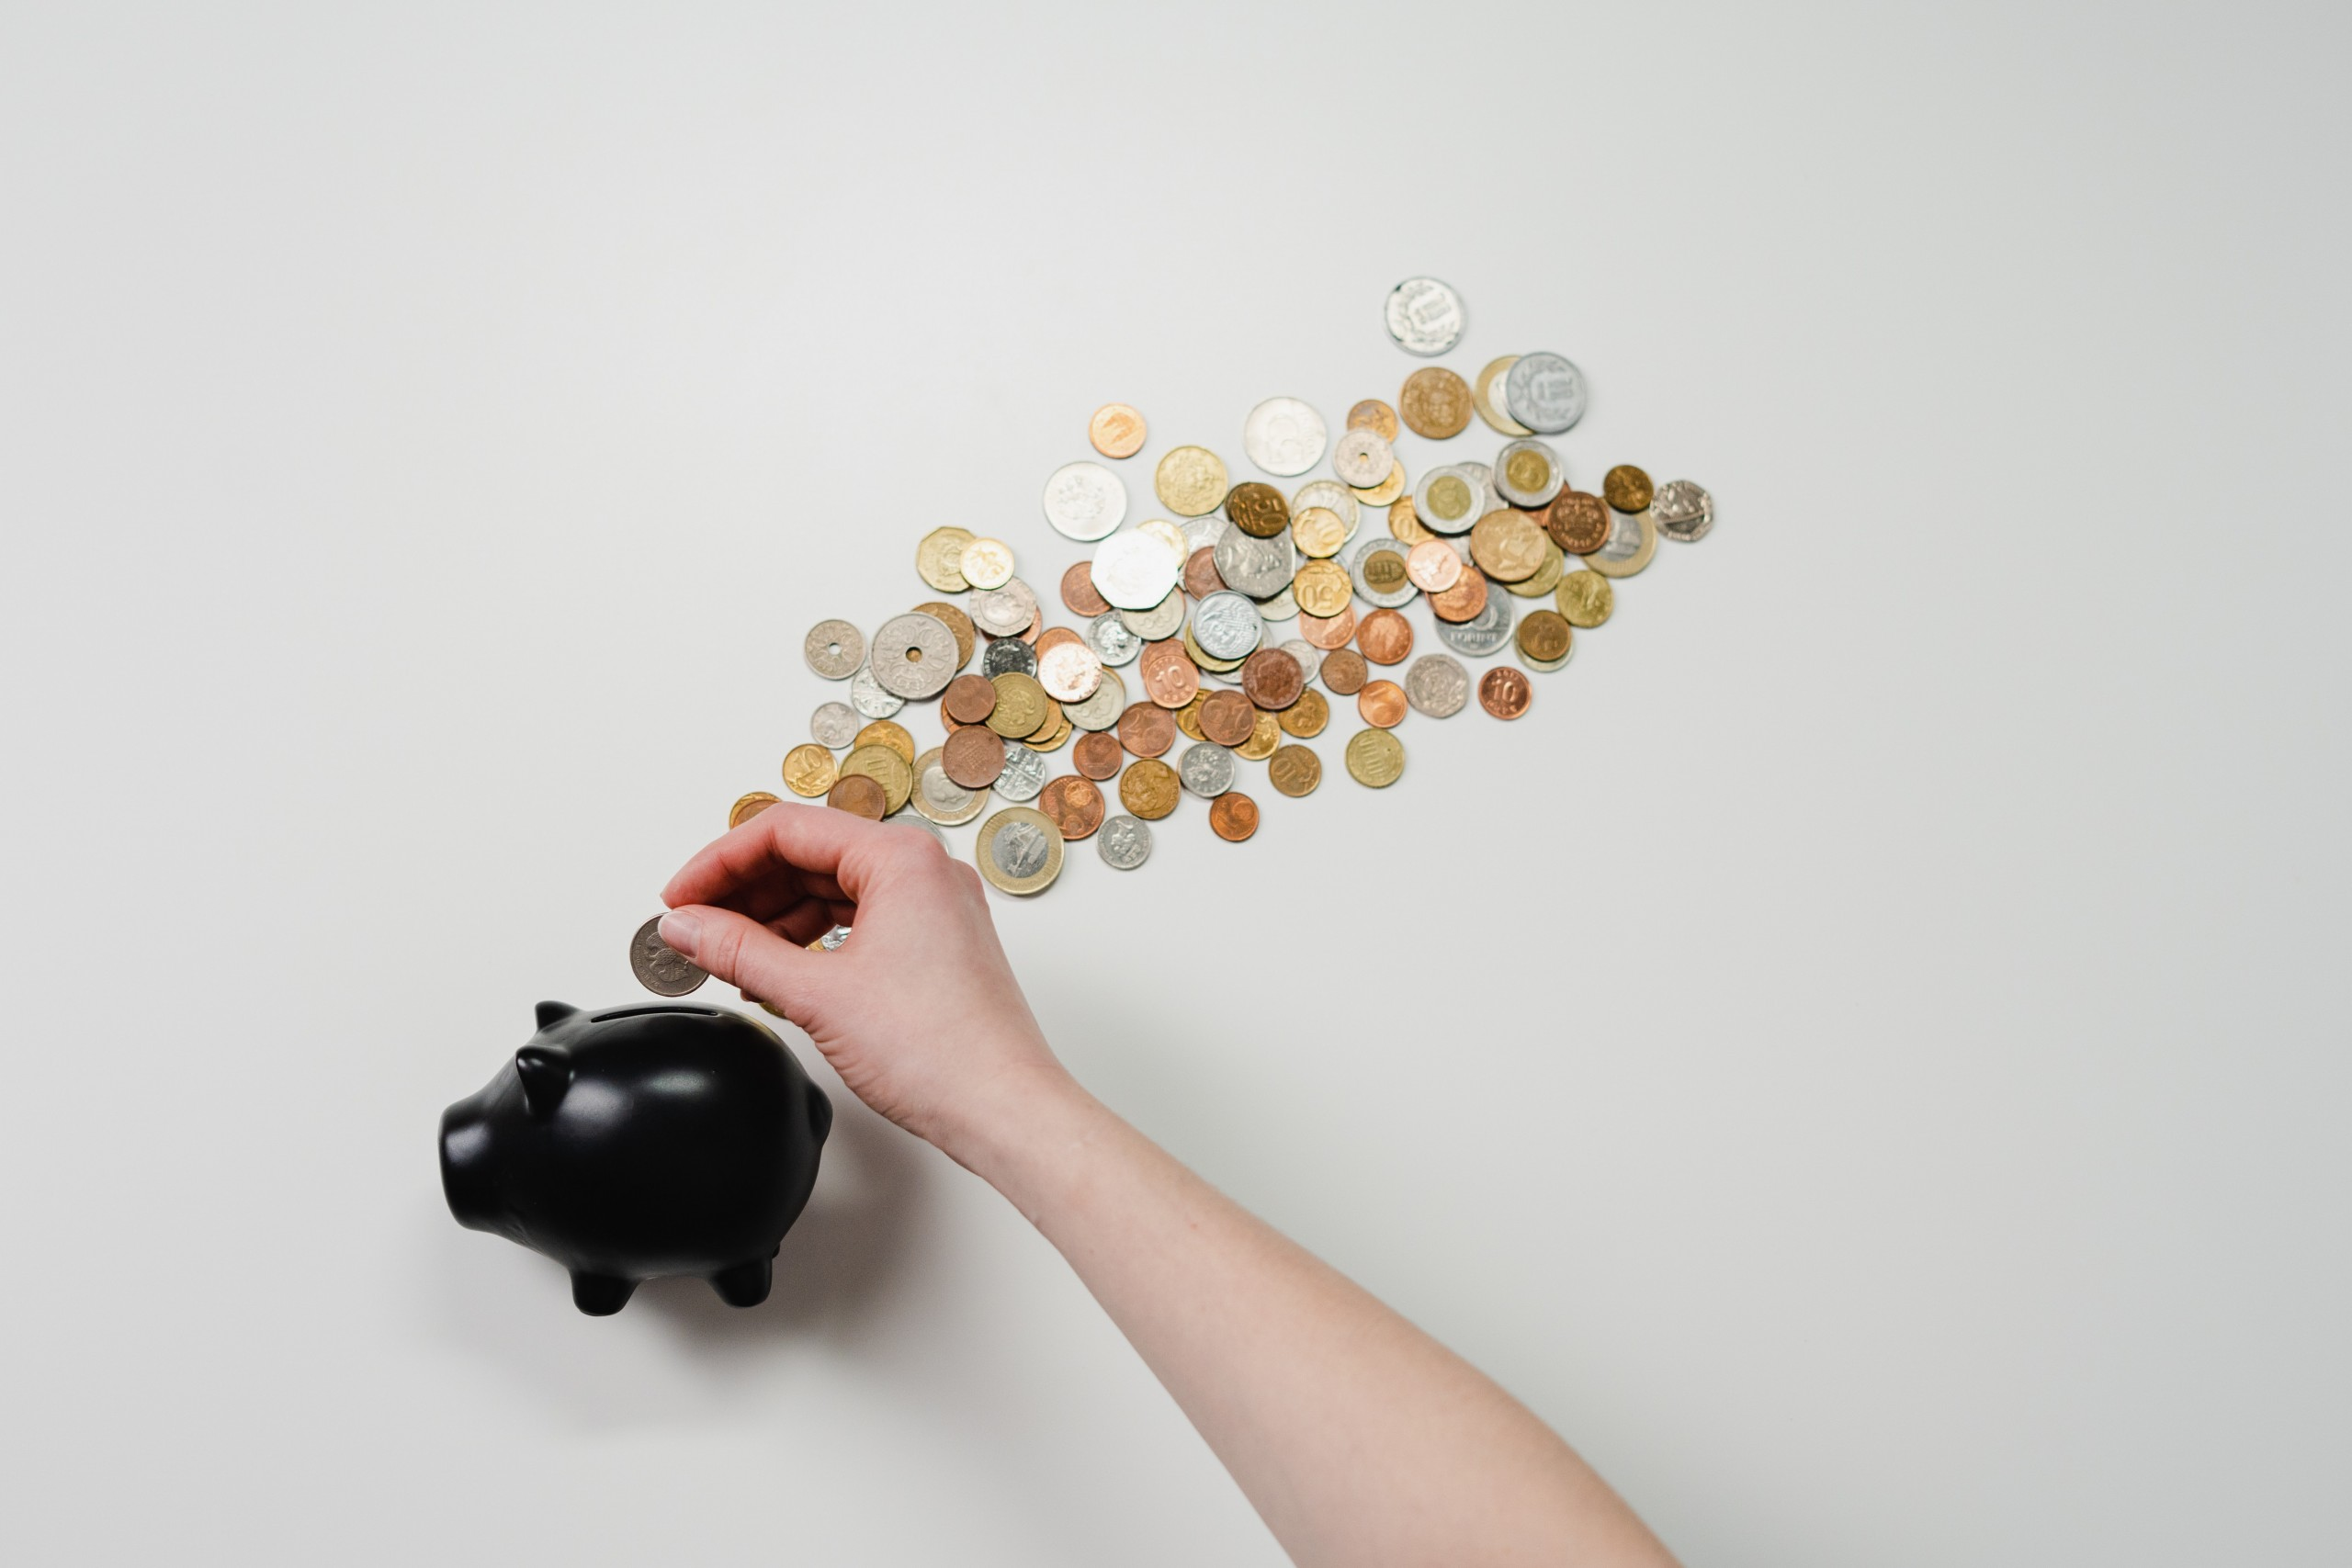 Picture which represents putting money into a piggy bank